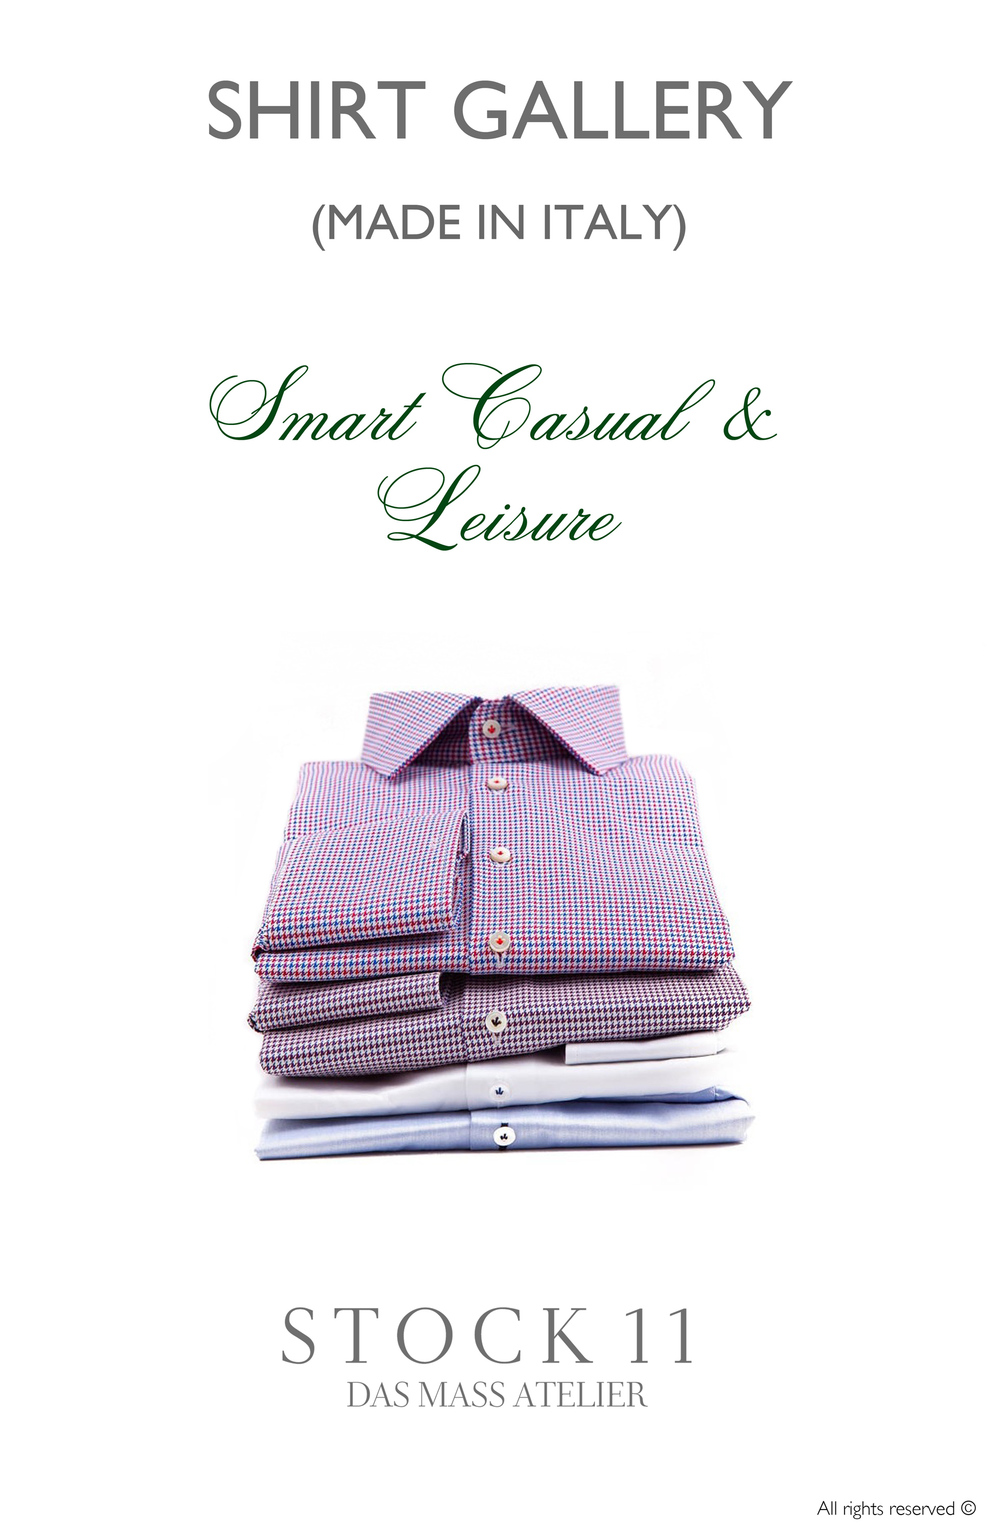 a_intro_Smart-Casual-&-Leisure_01_01.jpg